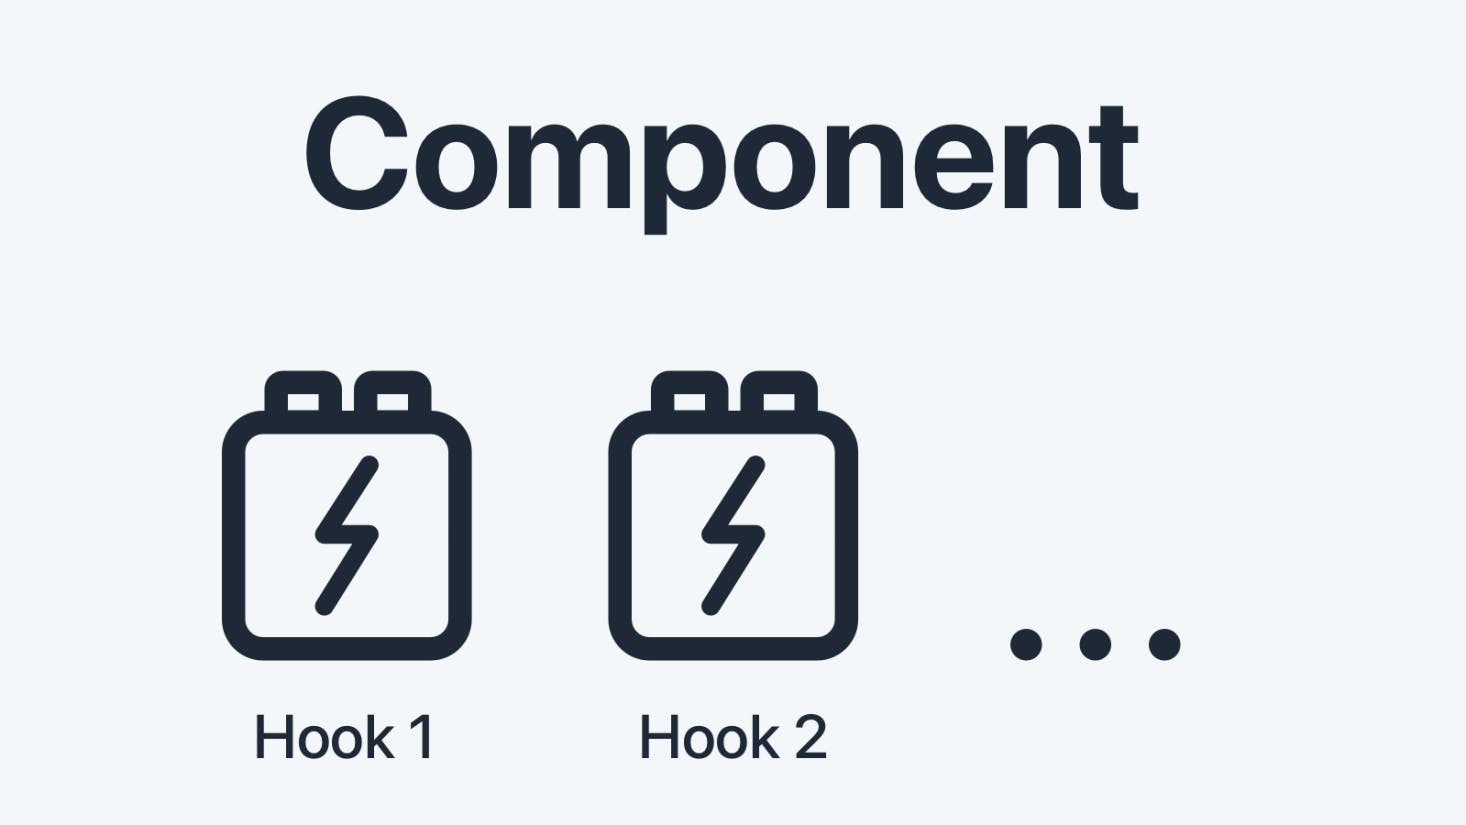 Hooks_add_features_to_your_components.png